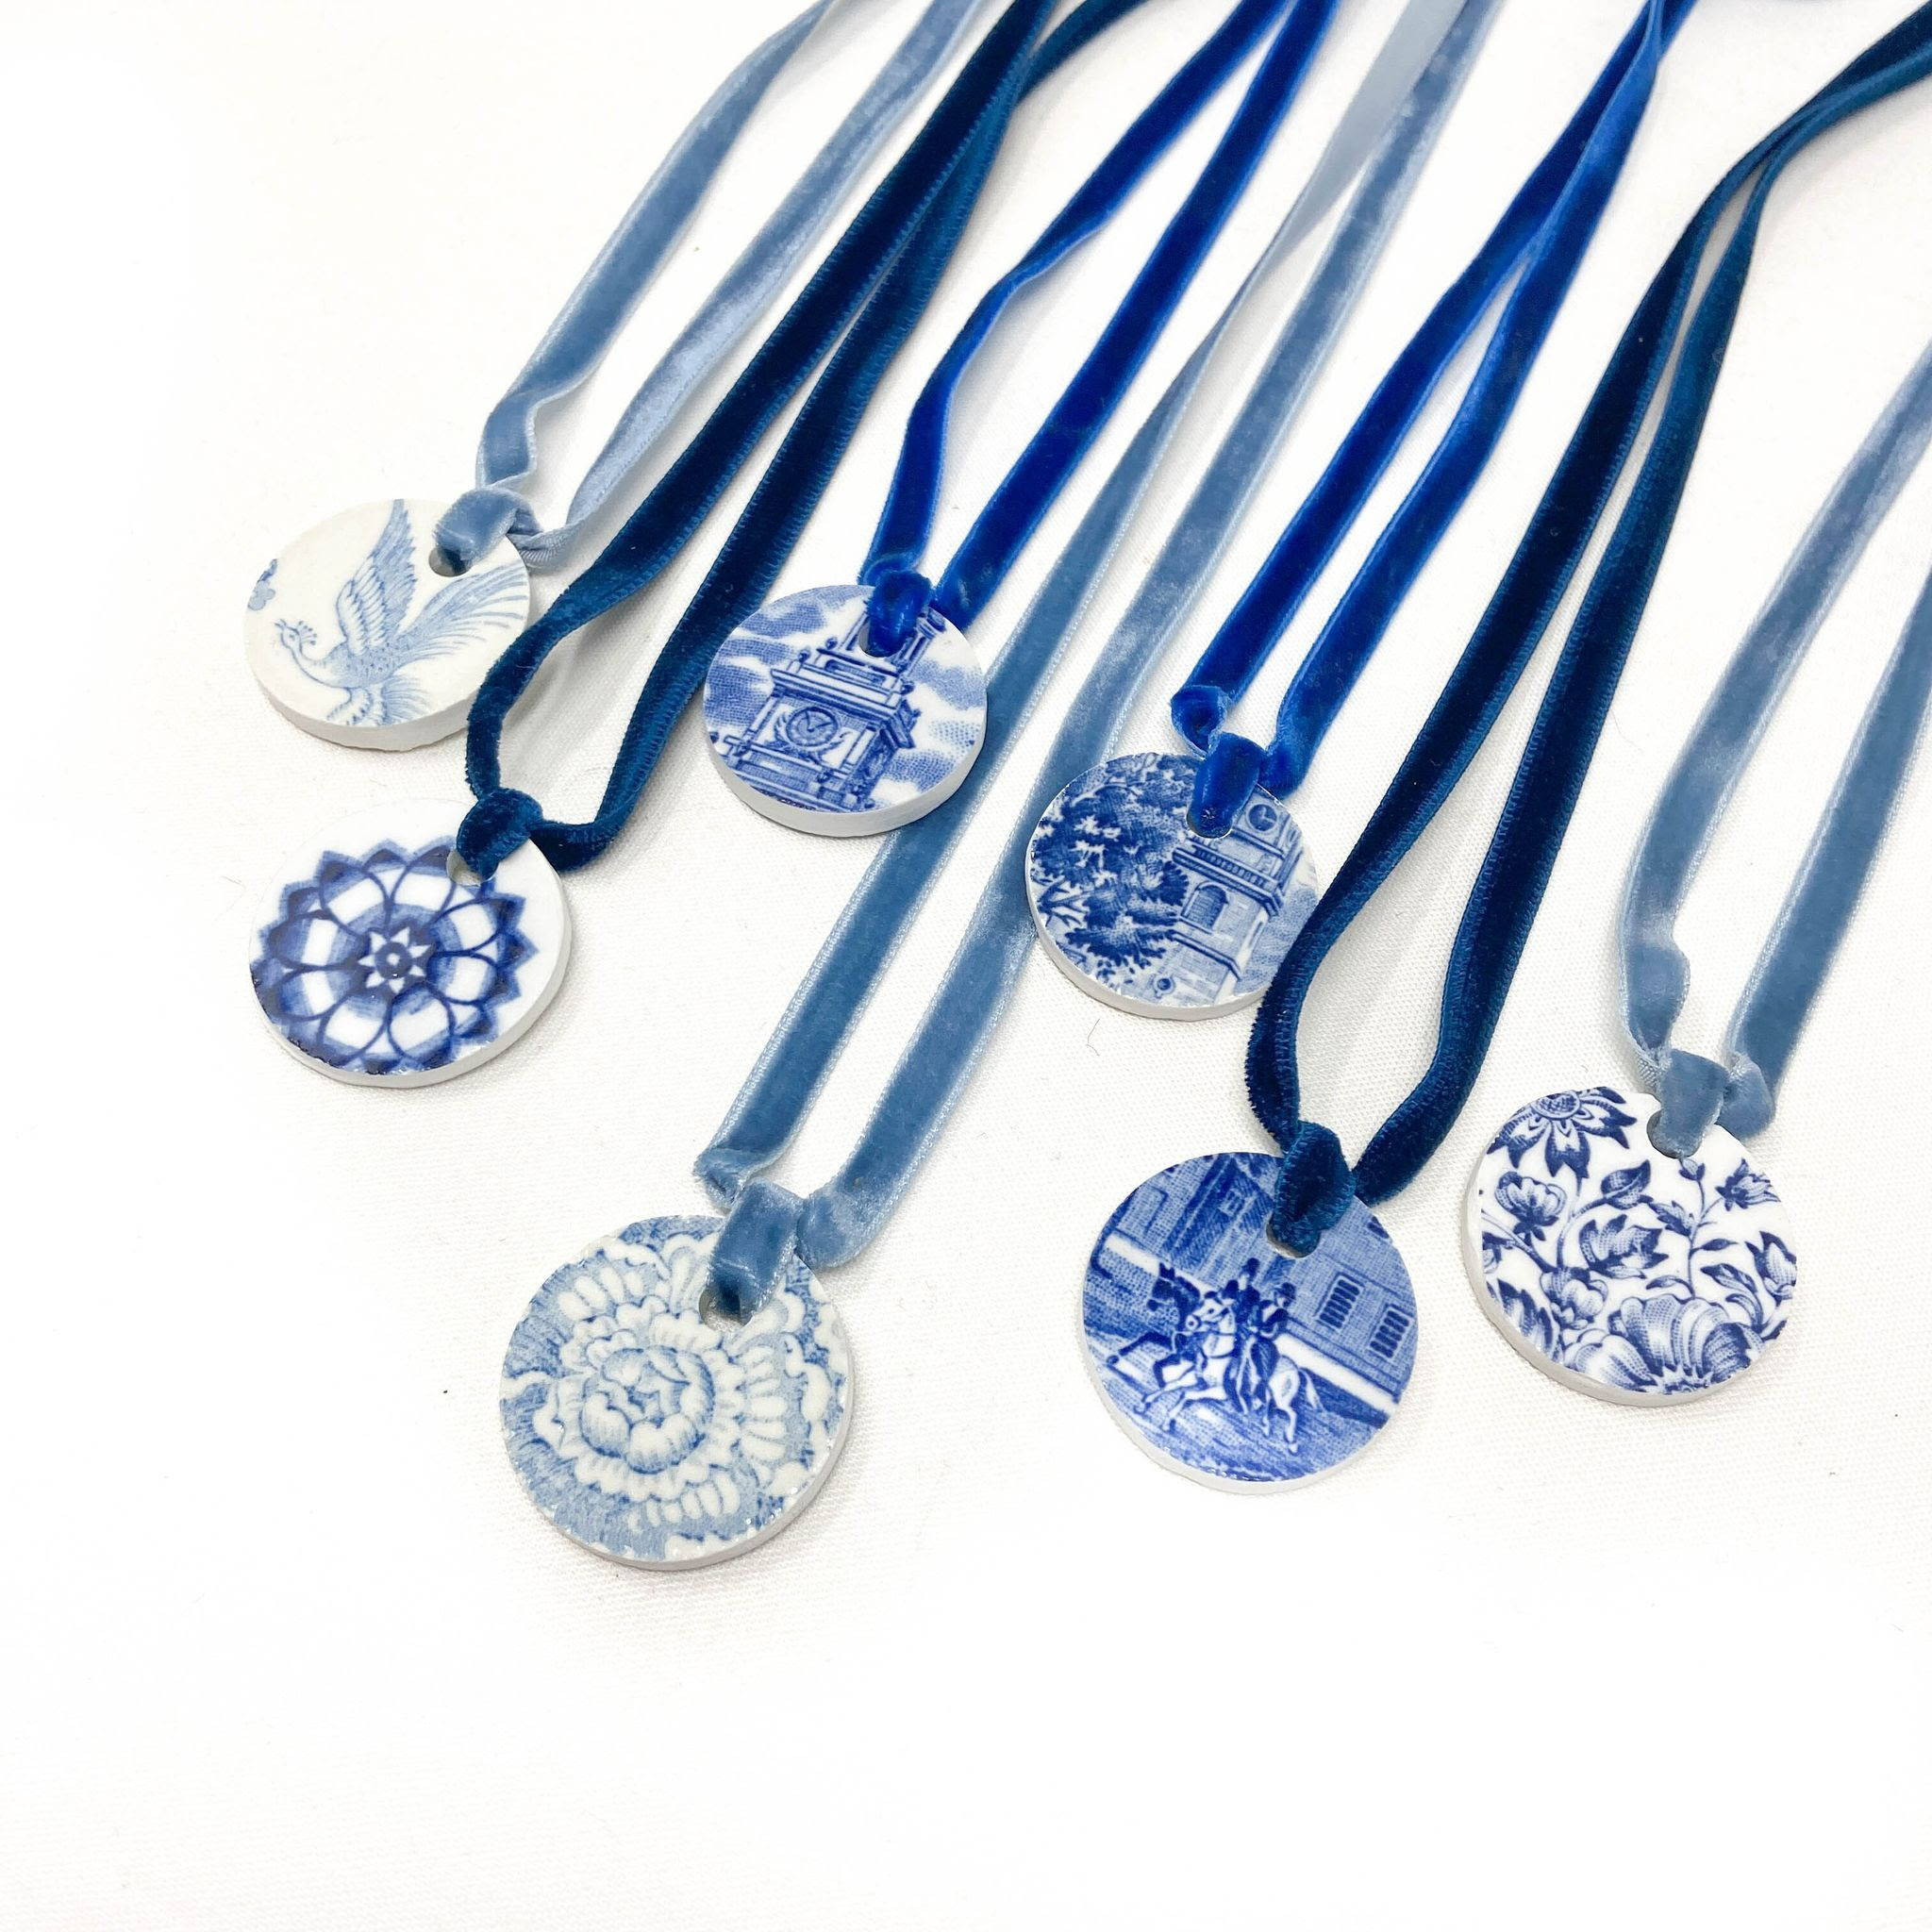 blue and white pendants made from upcycled transferware fine china by The Brooklyn Teacup - a few different styles lined up with velvet ribbon necklaces